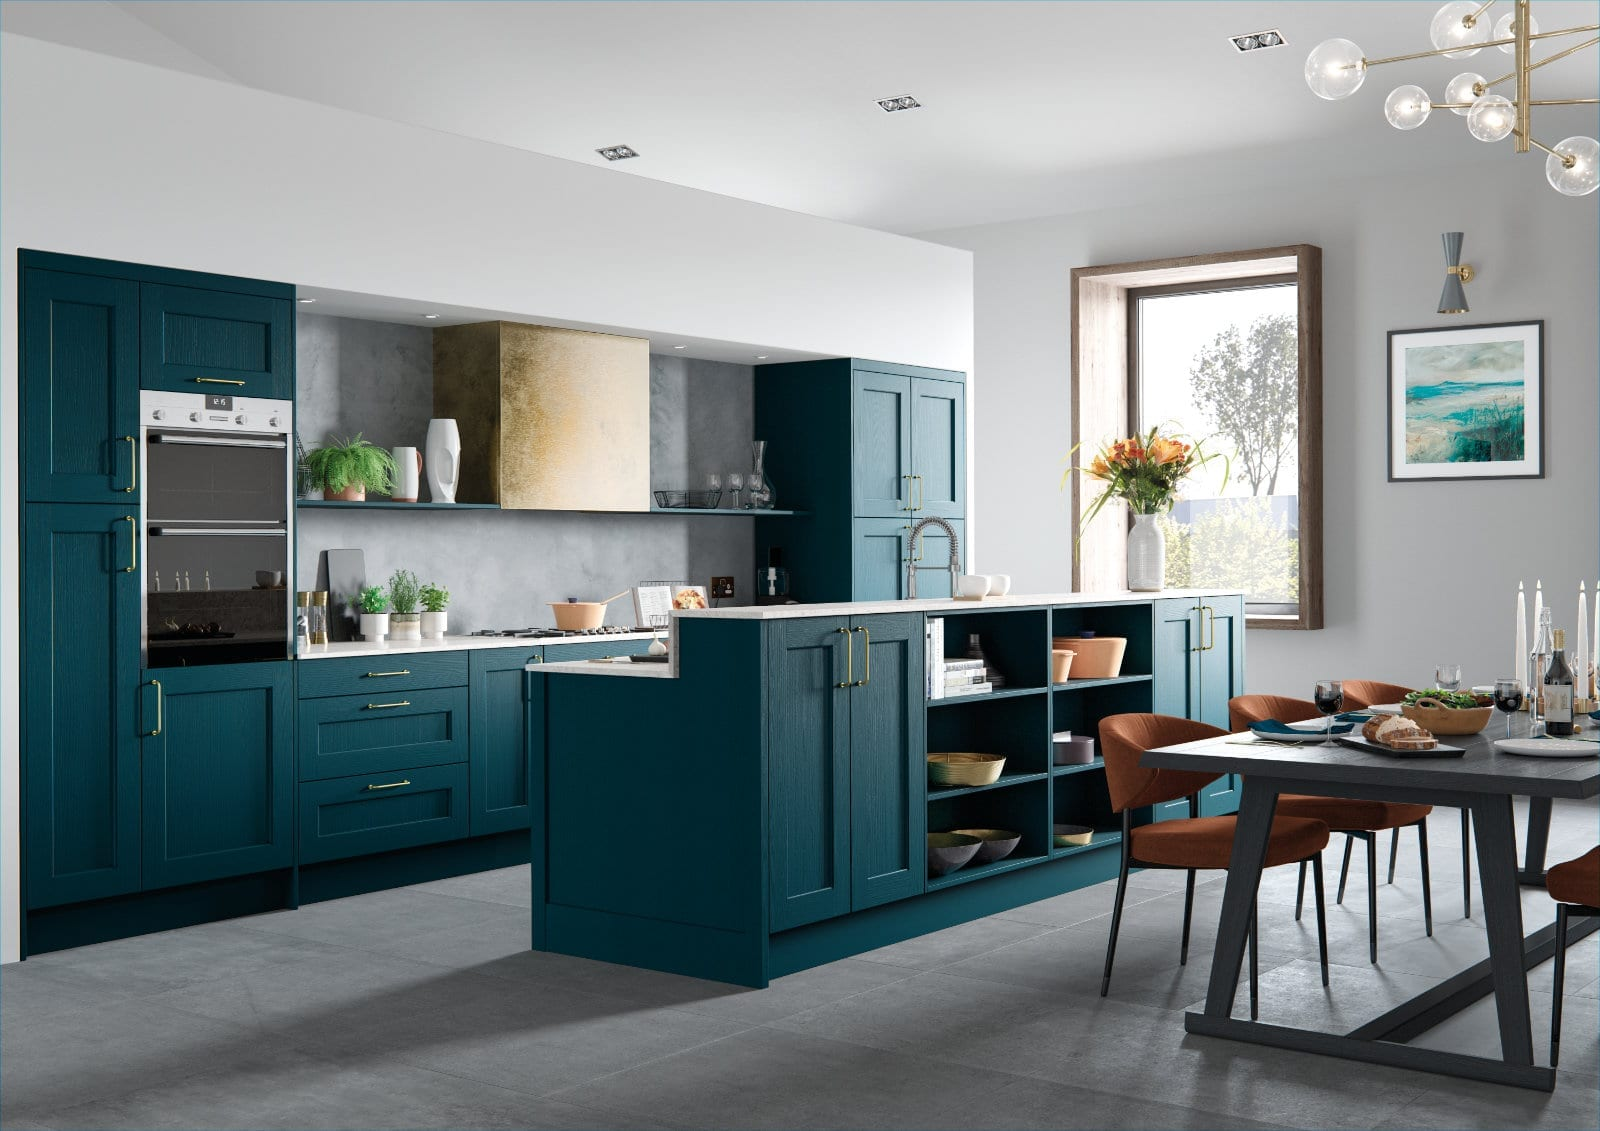 Alku Teal Shaker Open Plan Kitchen With Island 1 | Unique Bedrooms Direct | Dunstable